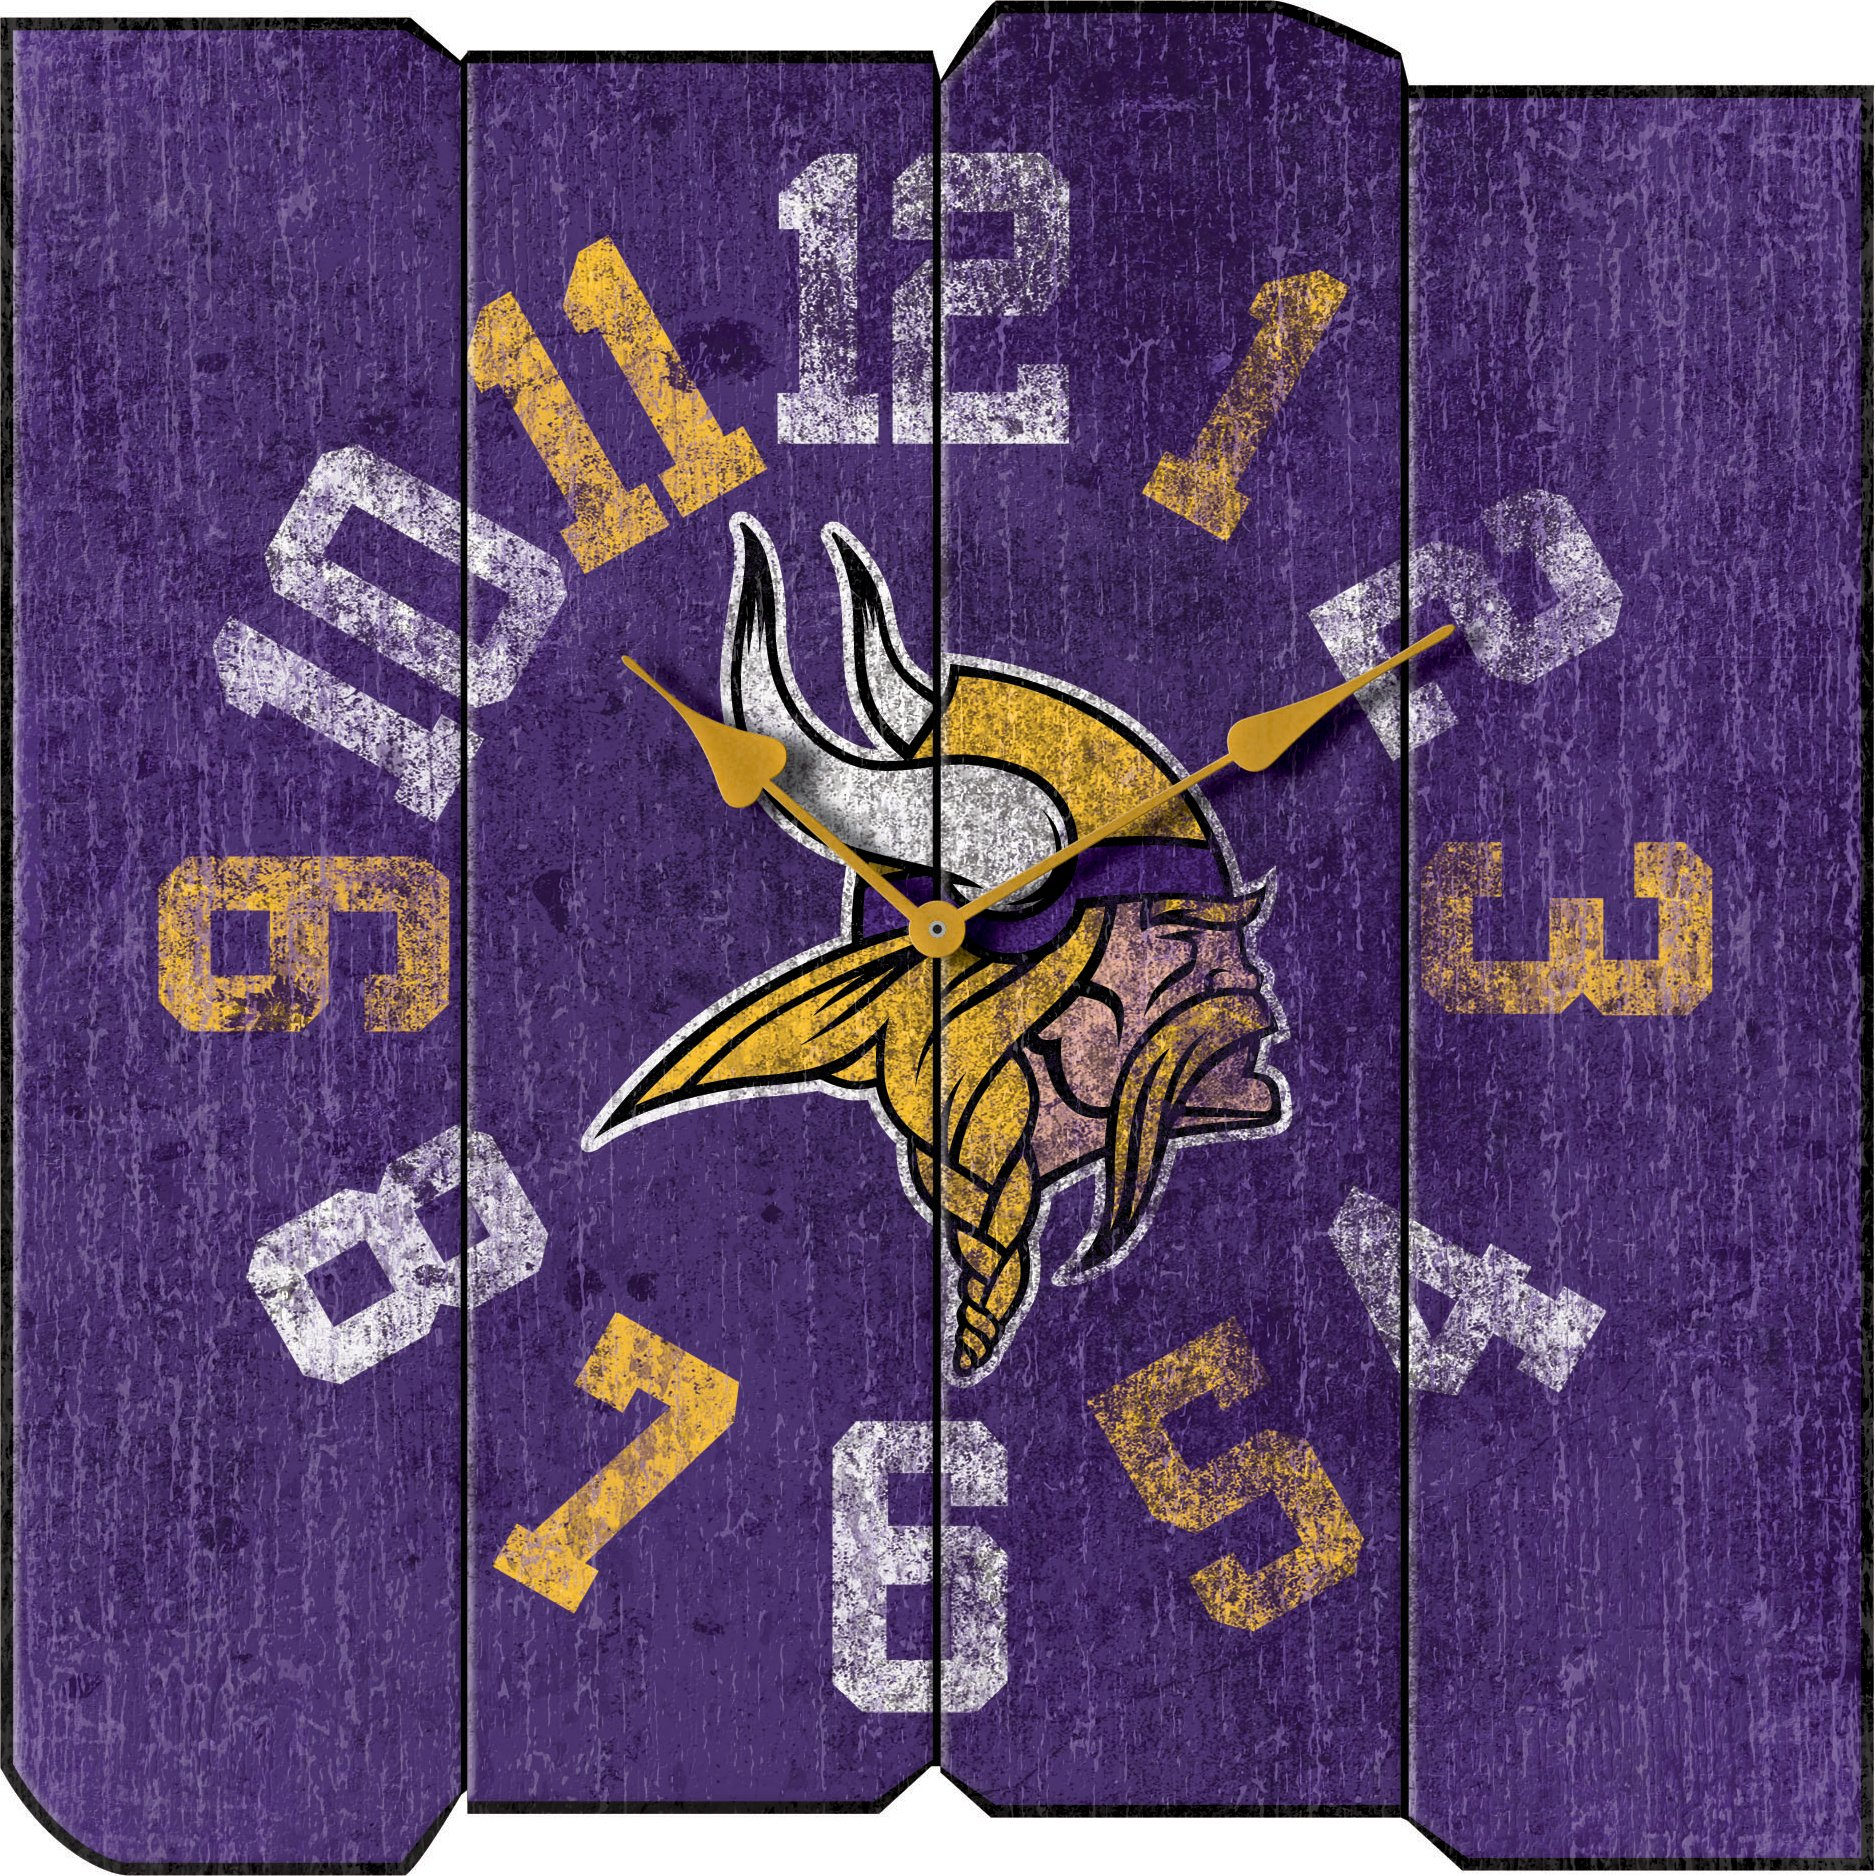 Imperial Officially Licensed NFL Merchandise: Vintage Square Clock, Minnesota Vikings by Imperial